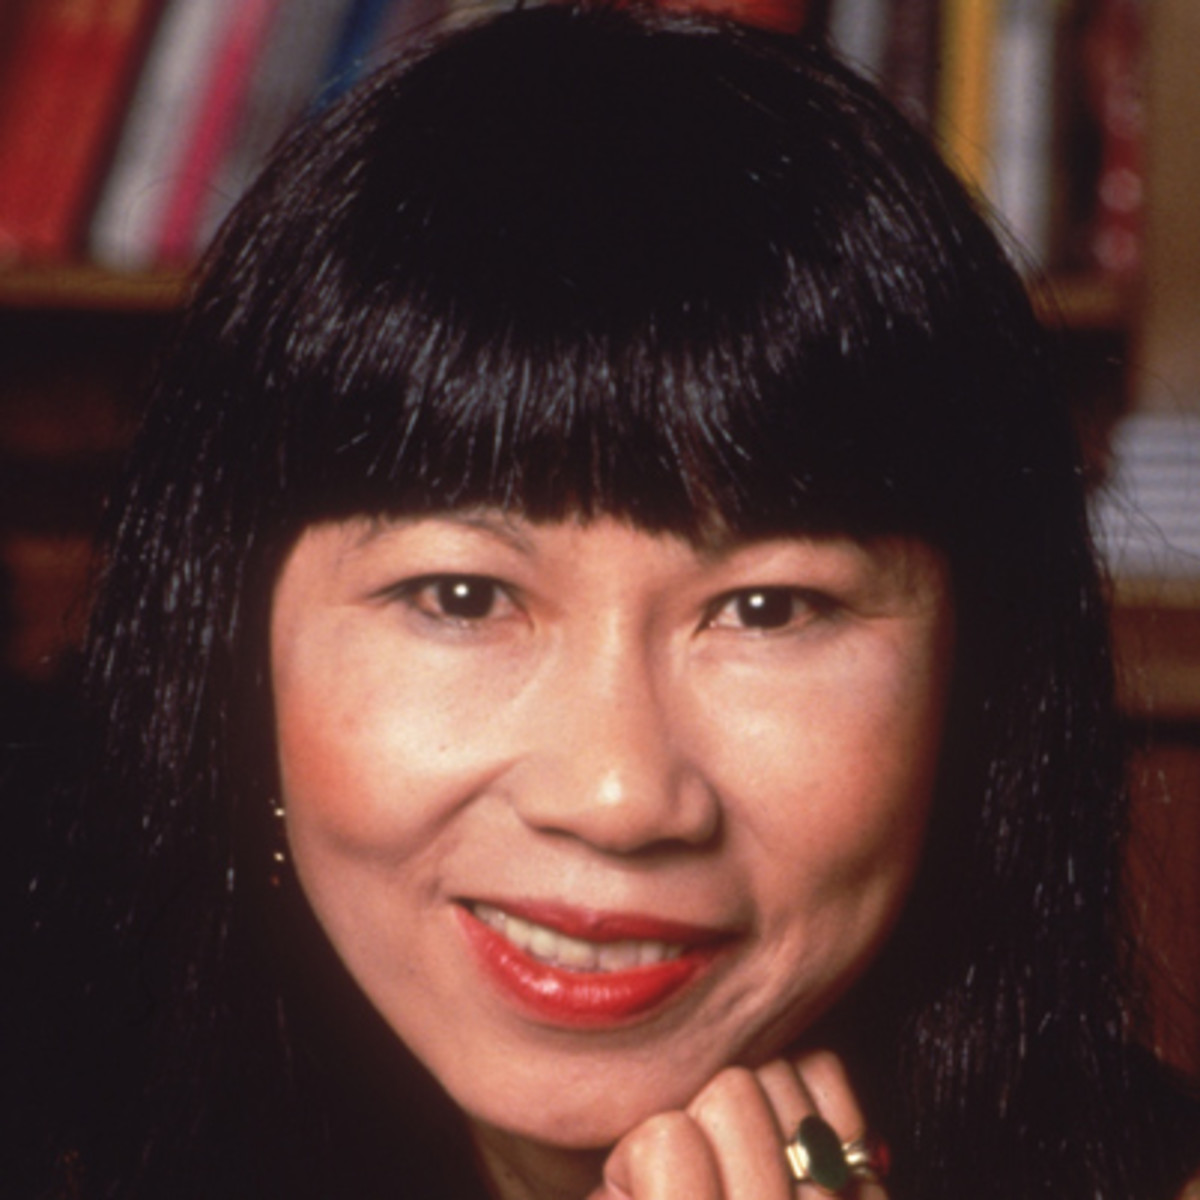 amy tan biography essay Amy tan was born in oakland,  biography of amy tan amy tan was born in oakland,  her essay mother tongue has been widely anthologized.